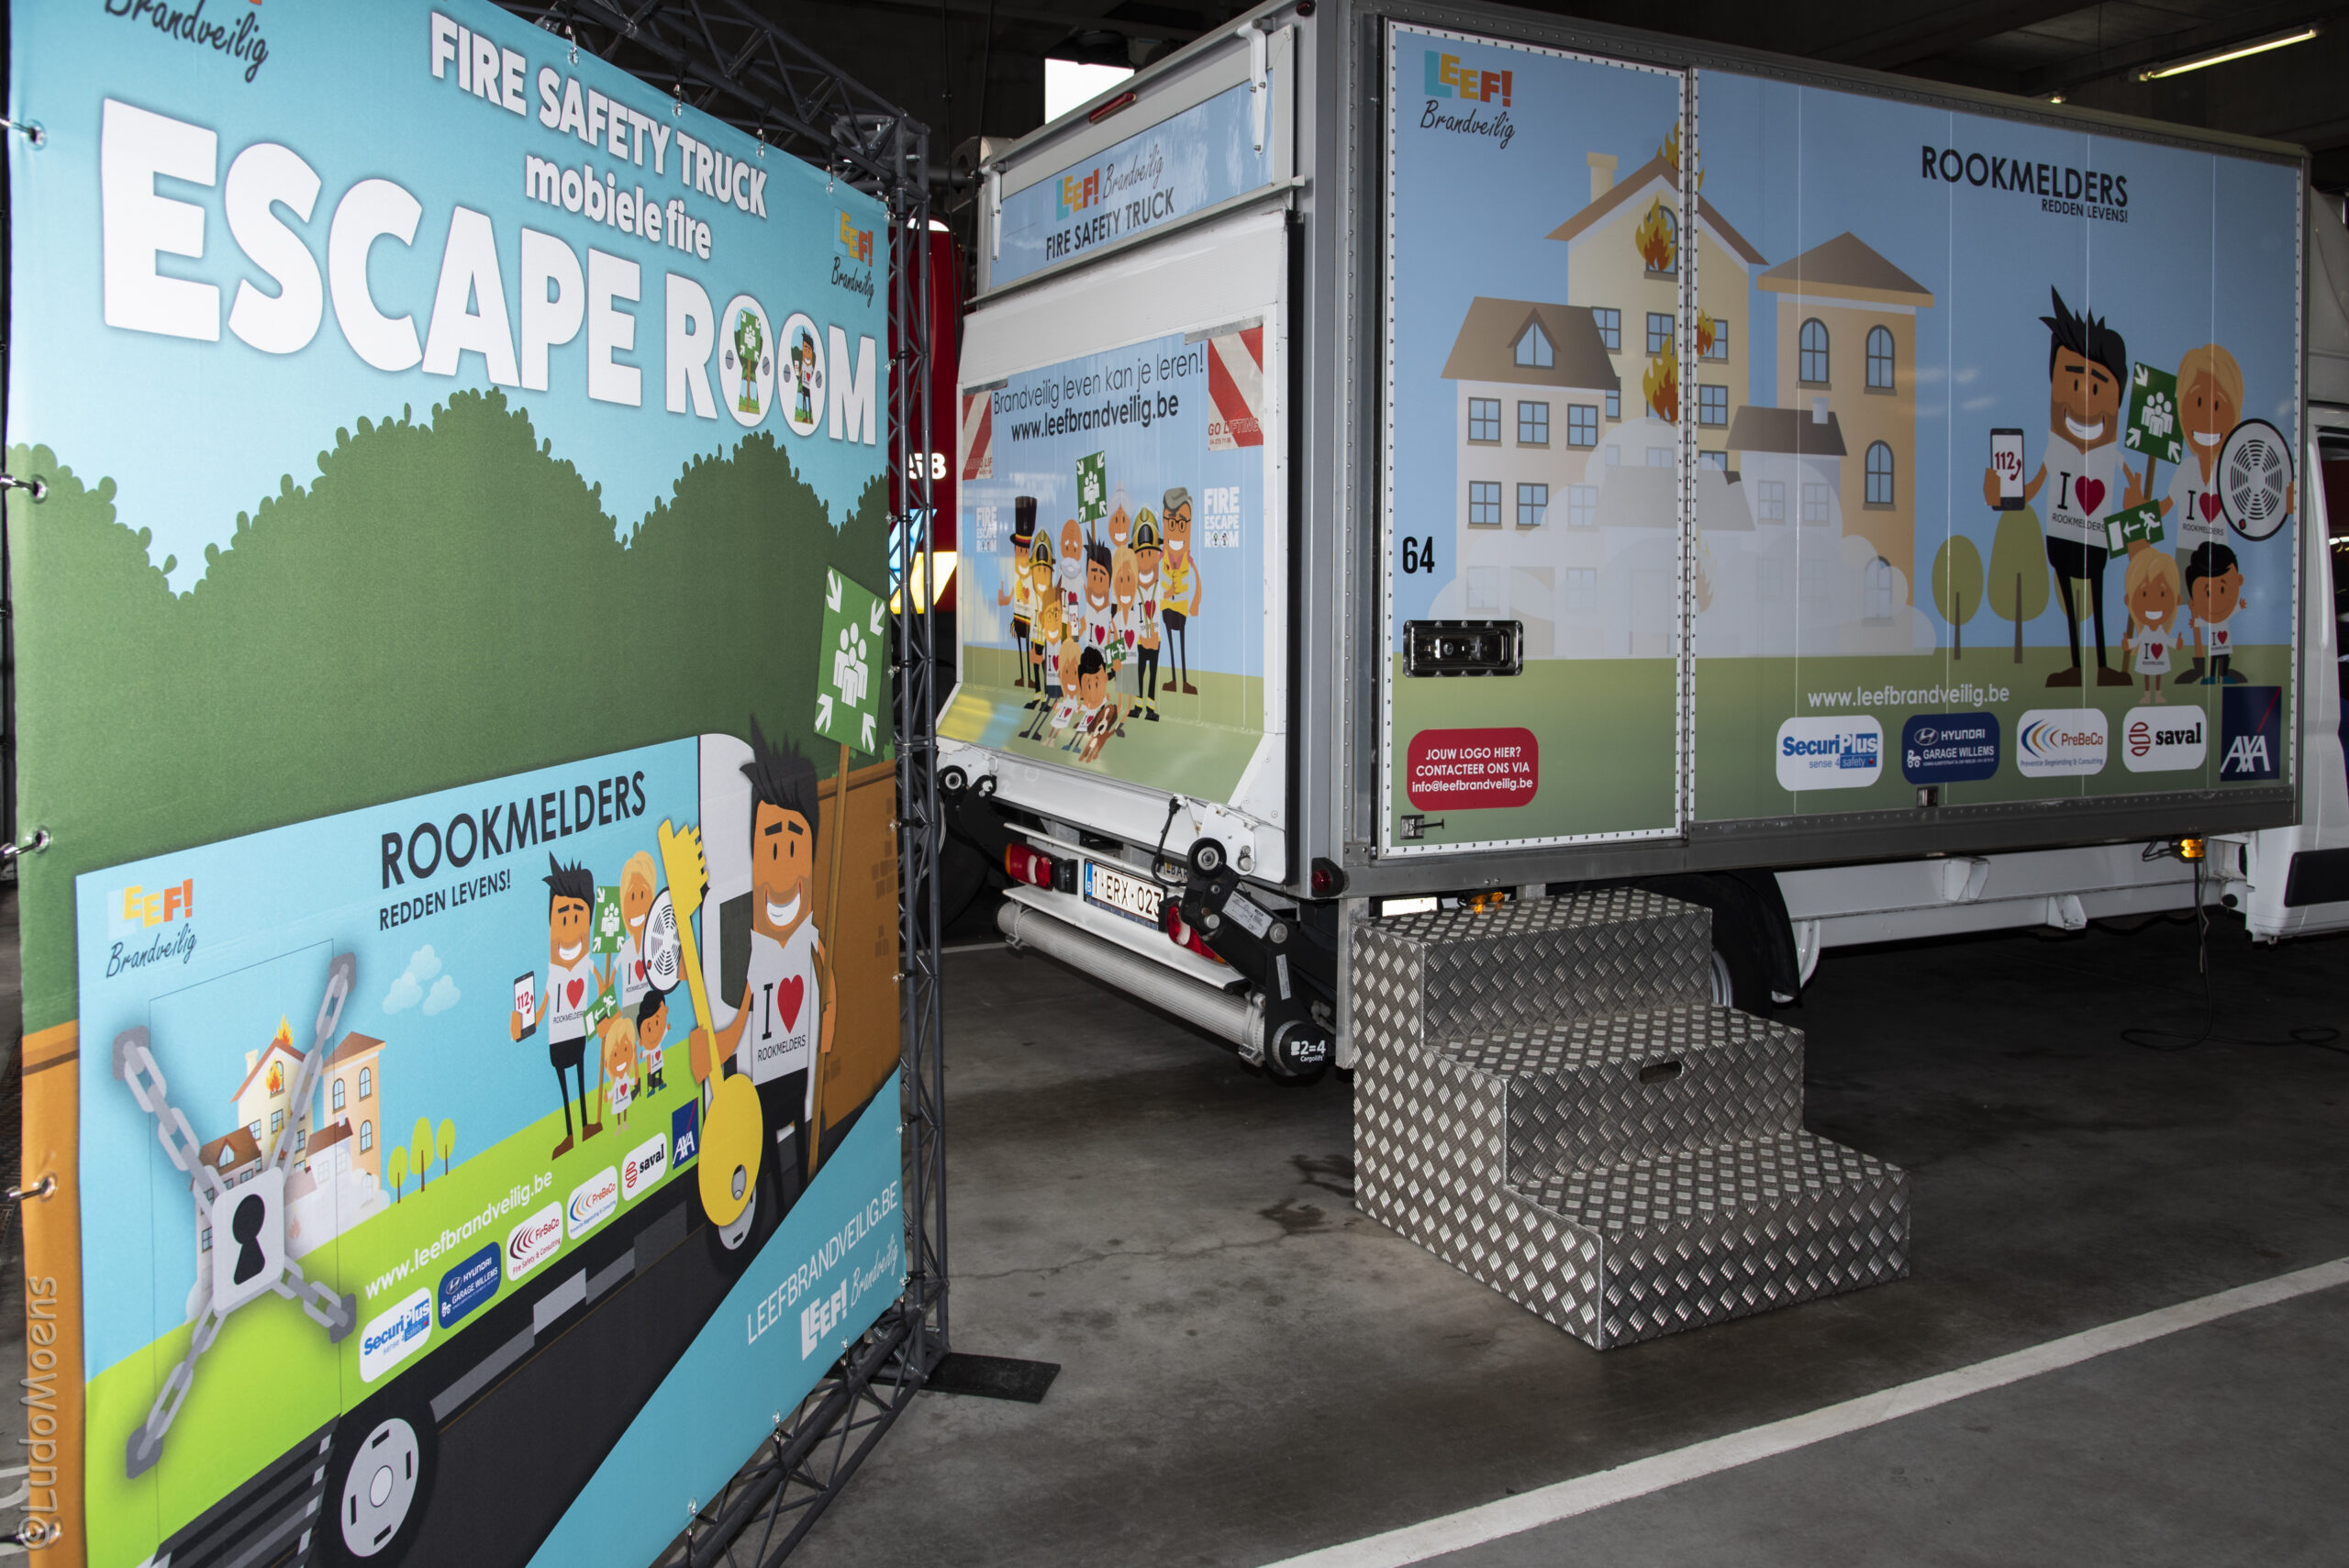 Word partner van de 'Fire Safety Truck'!